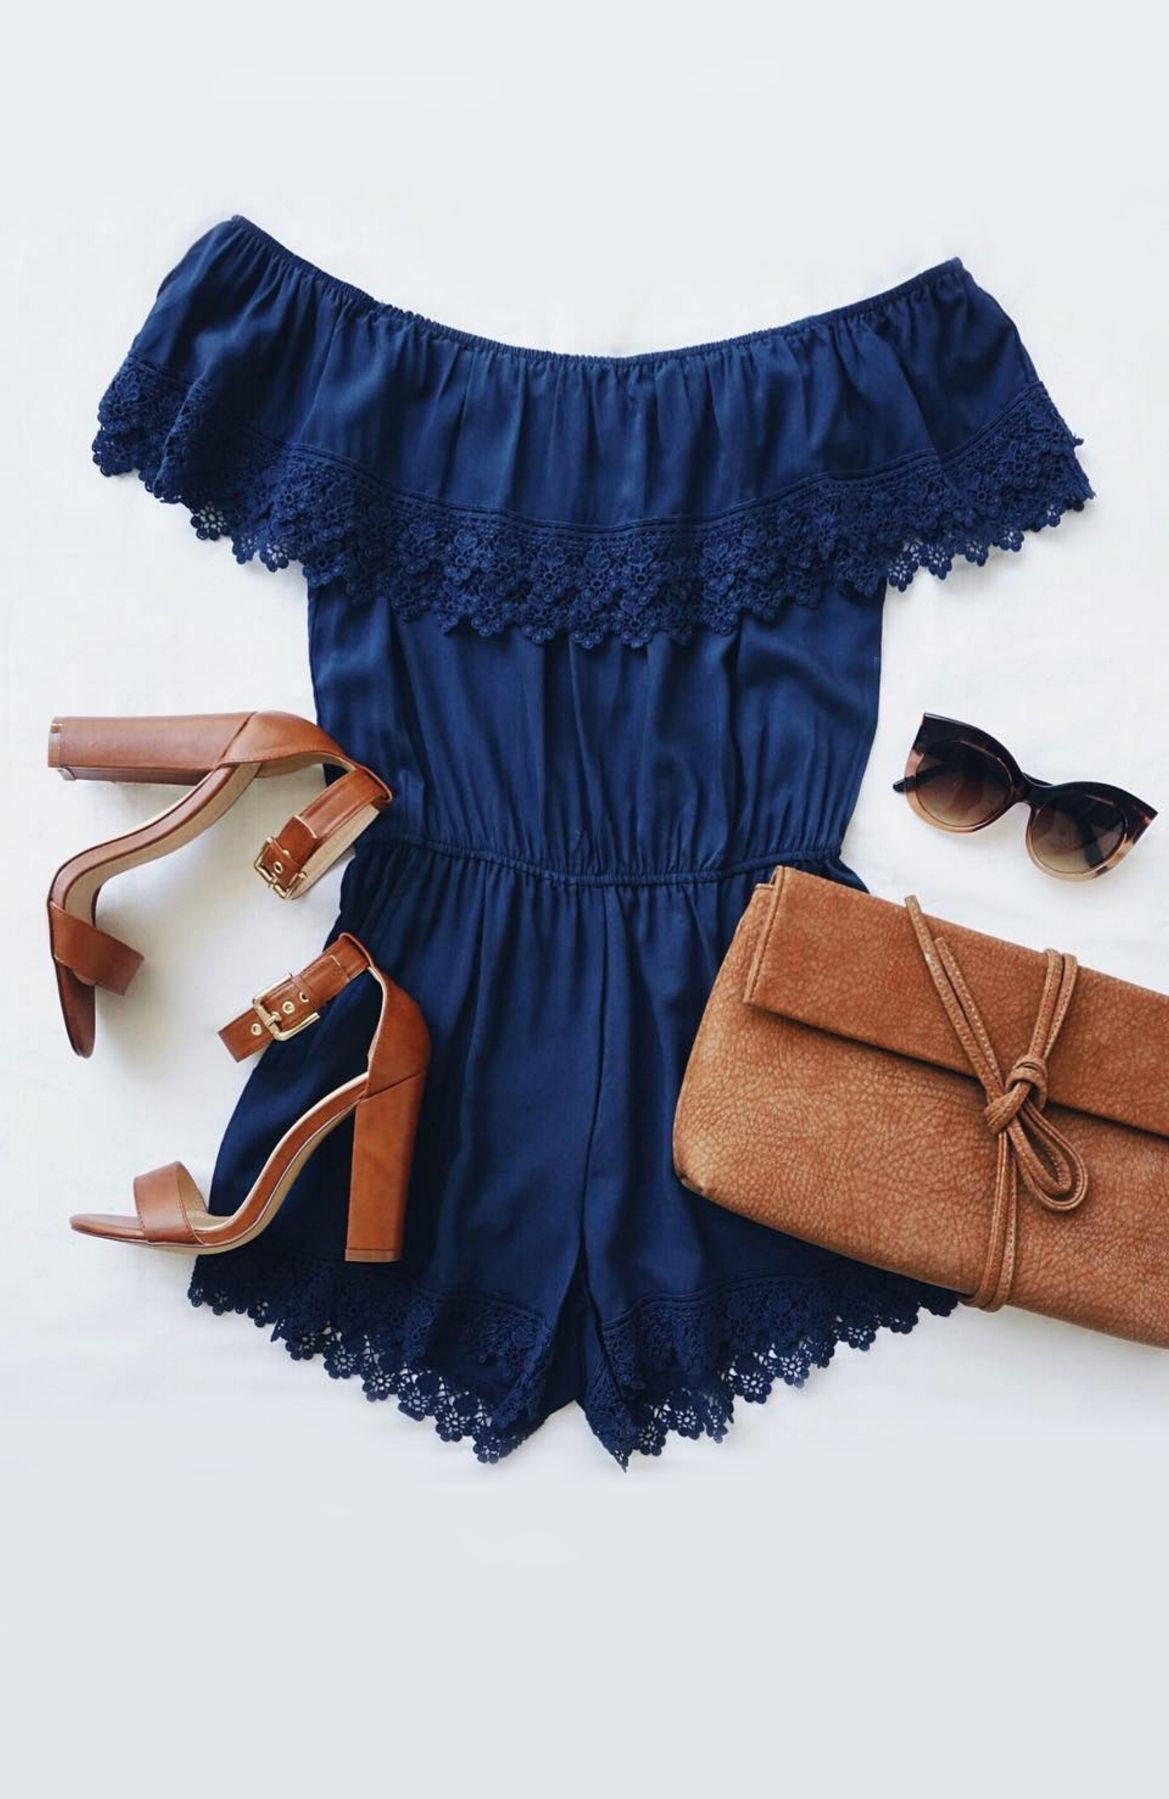 Coveted across the globe, the Others Follow Coventina Navy Blue Off-the-Shoulder Lace Romper is what our vacation-ready wardrobe is craving!